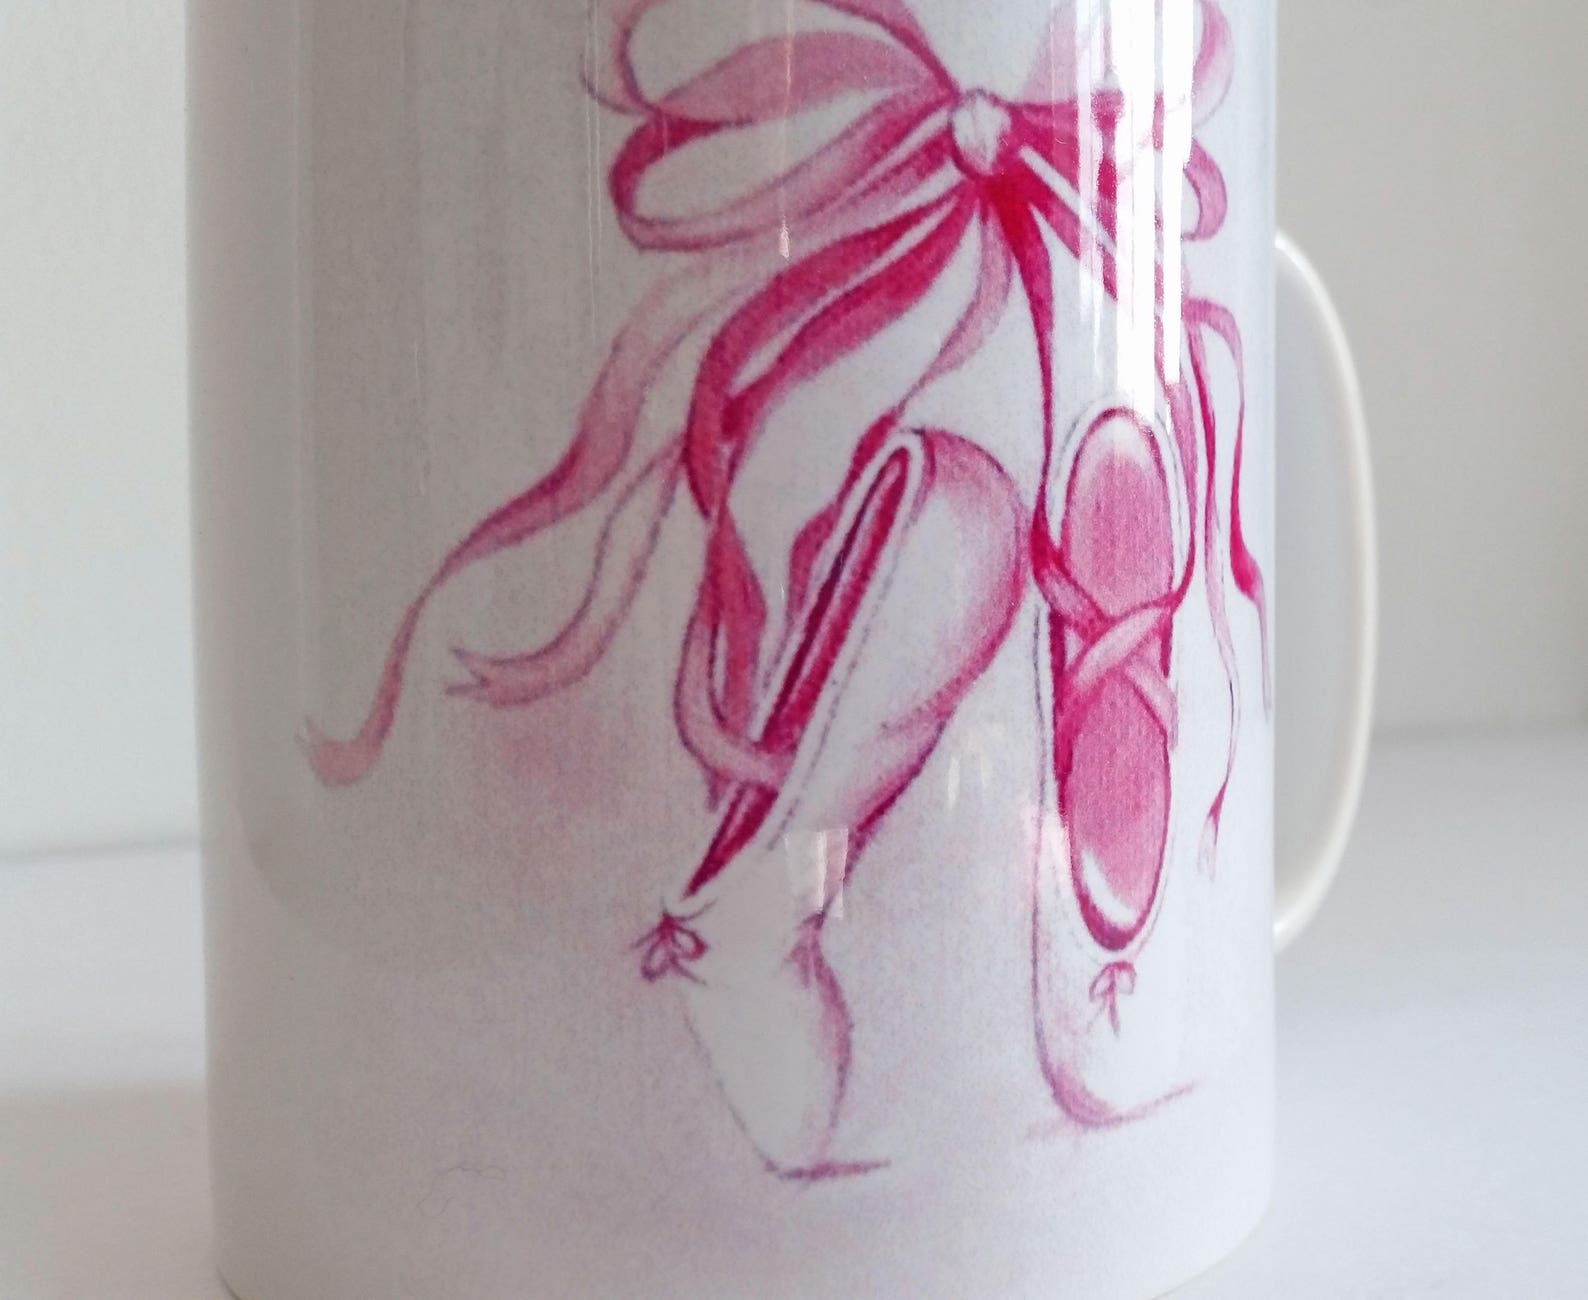 ready made mug featuring my ballet shoes design - perfect gift for a little dancer - 1 working day dispatch